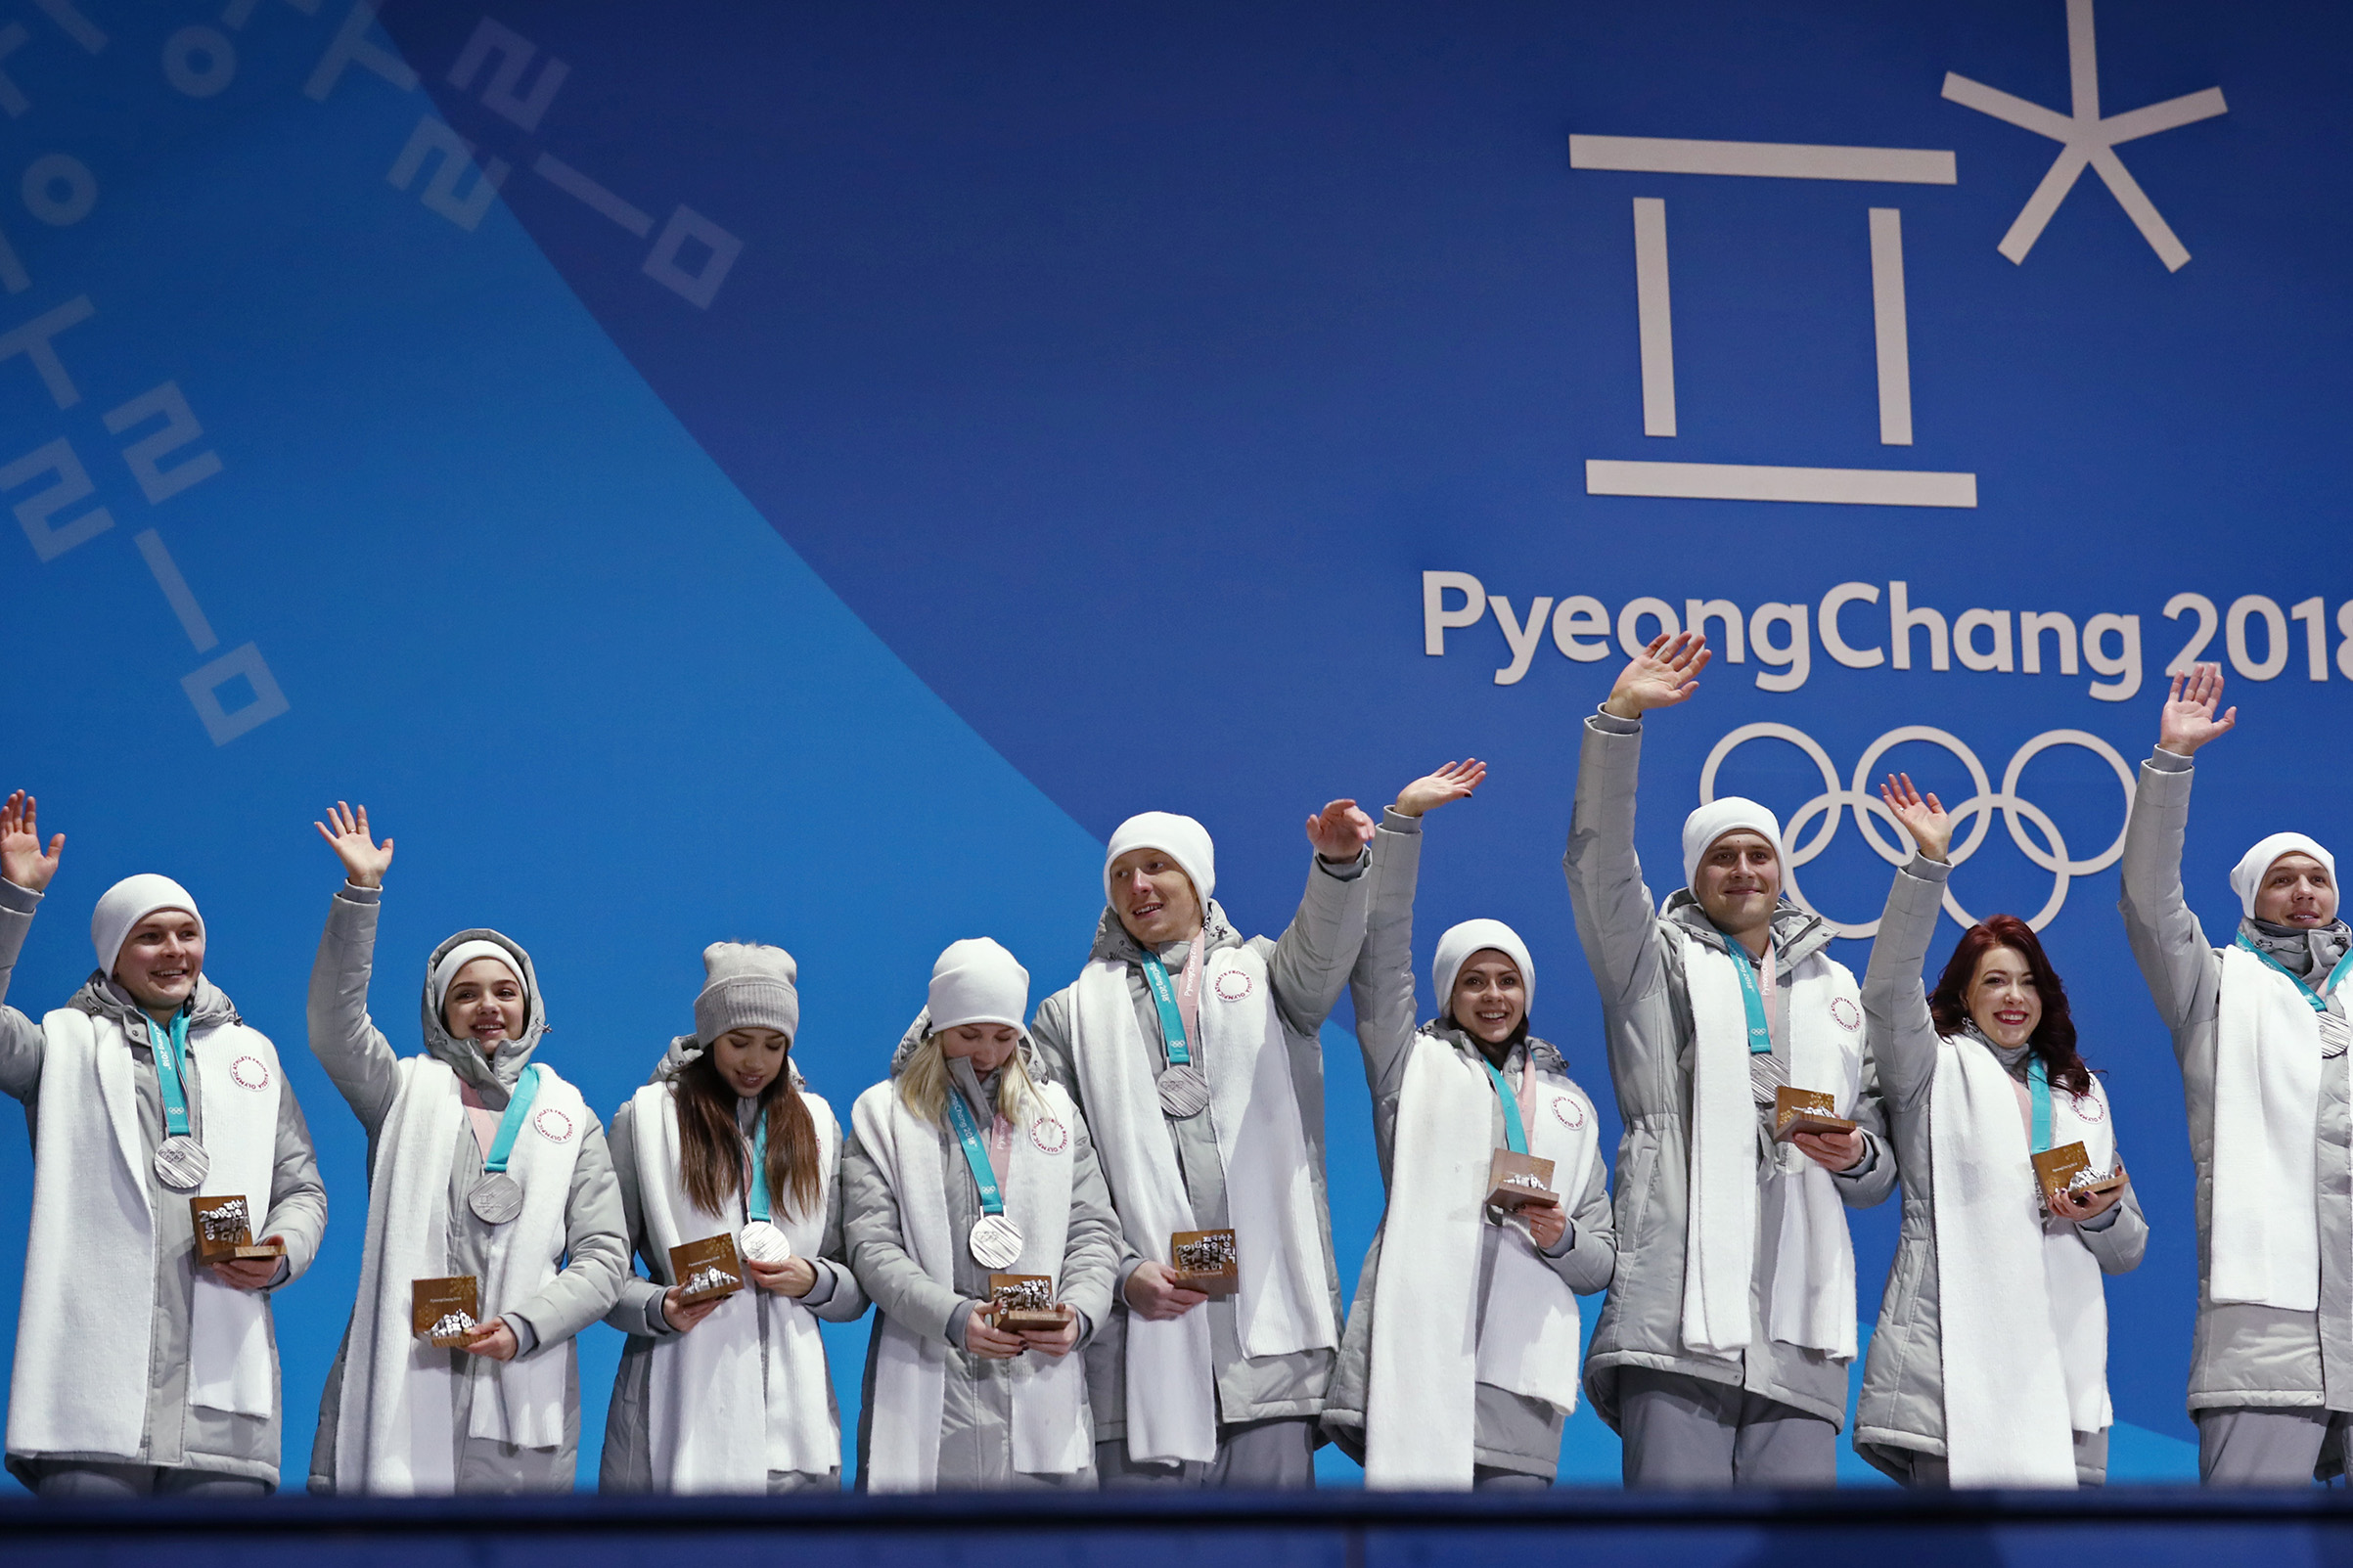 Olympic Athletes from Russia Mikhail Kolyada, Evgenia Medvedeva, Alina Zagitova, Yevgenia Tarasova, Vladimir Morozov, Natalya Zabiyako, Alexander Enbert, Ekaterina Bobrova, and Dmitri Soloviev (L-R) pose with their silver medals during the victory ceremony for the figure skating team event.